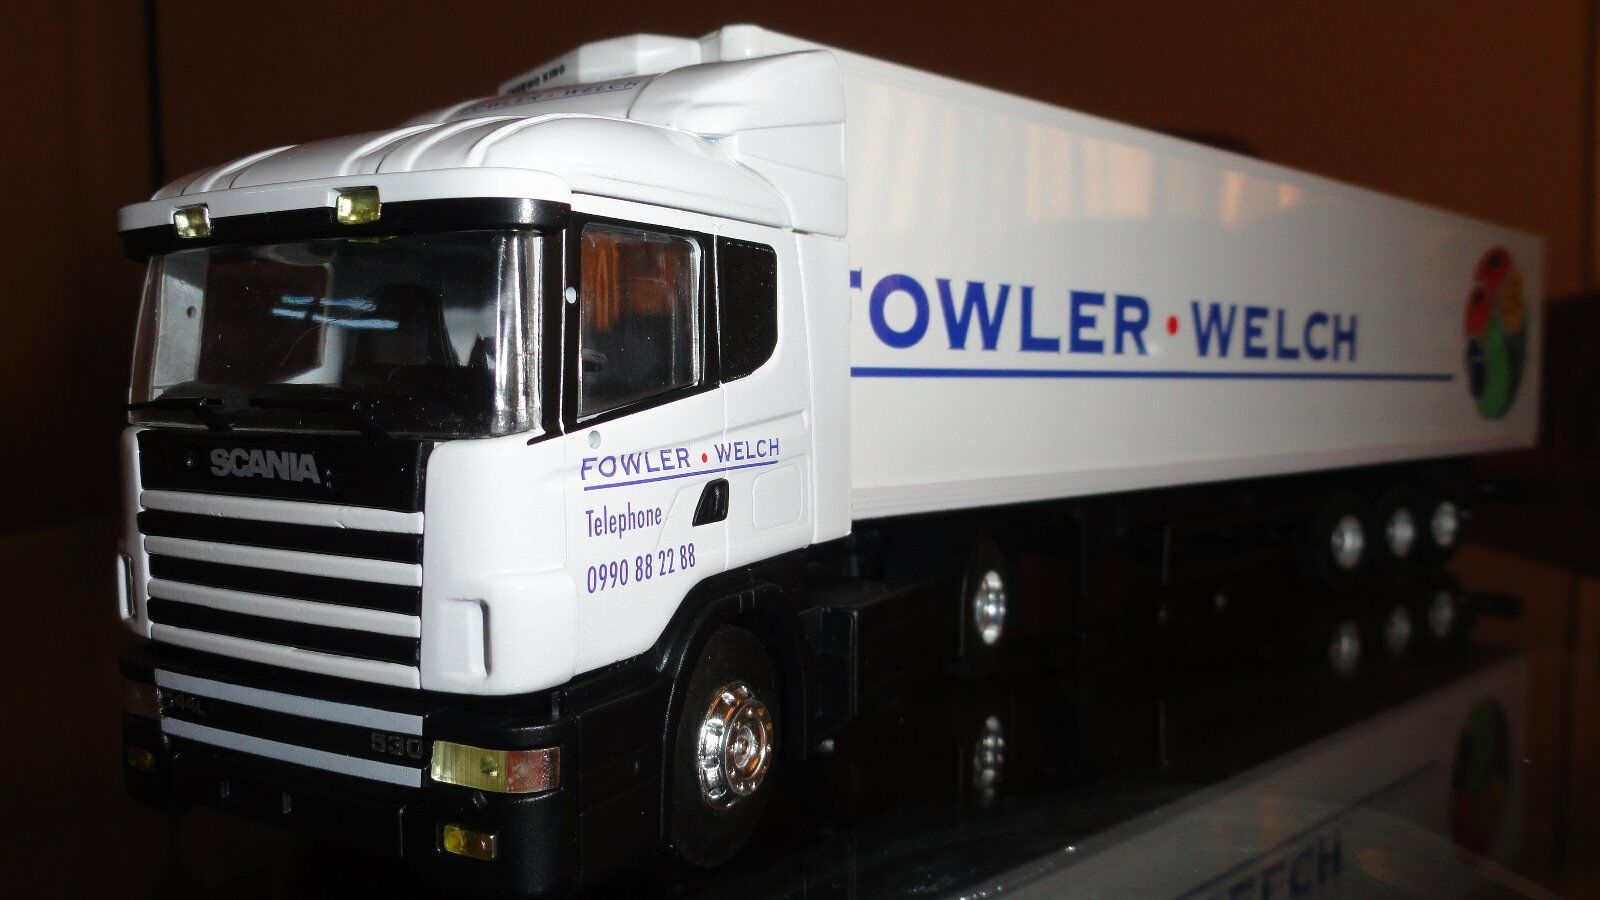 ELIGOR SEARCH IMPEX SCANIA FOWLER WELCH, 1 43, NEW